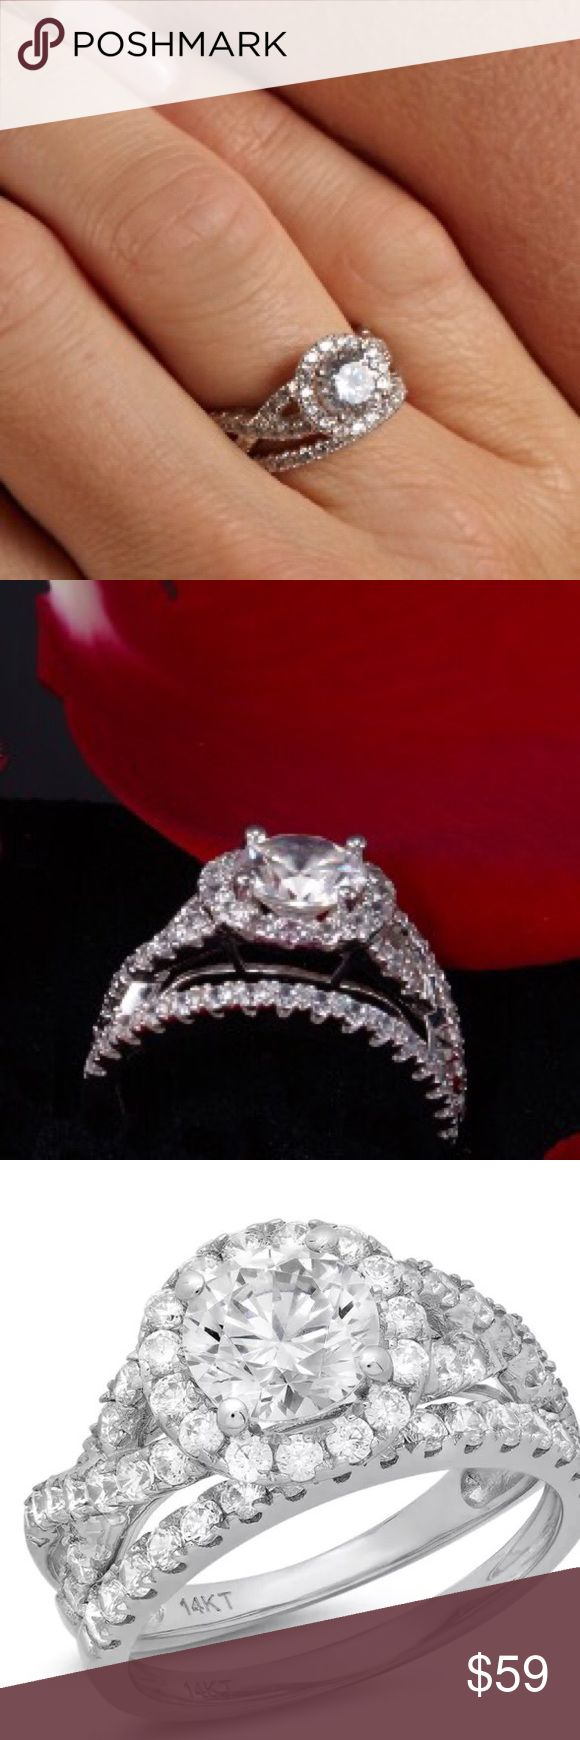 Simulated Diamond Wedding Ring Sterling Silver